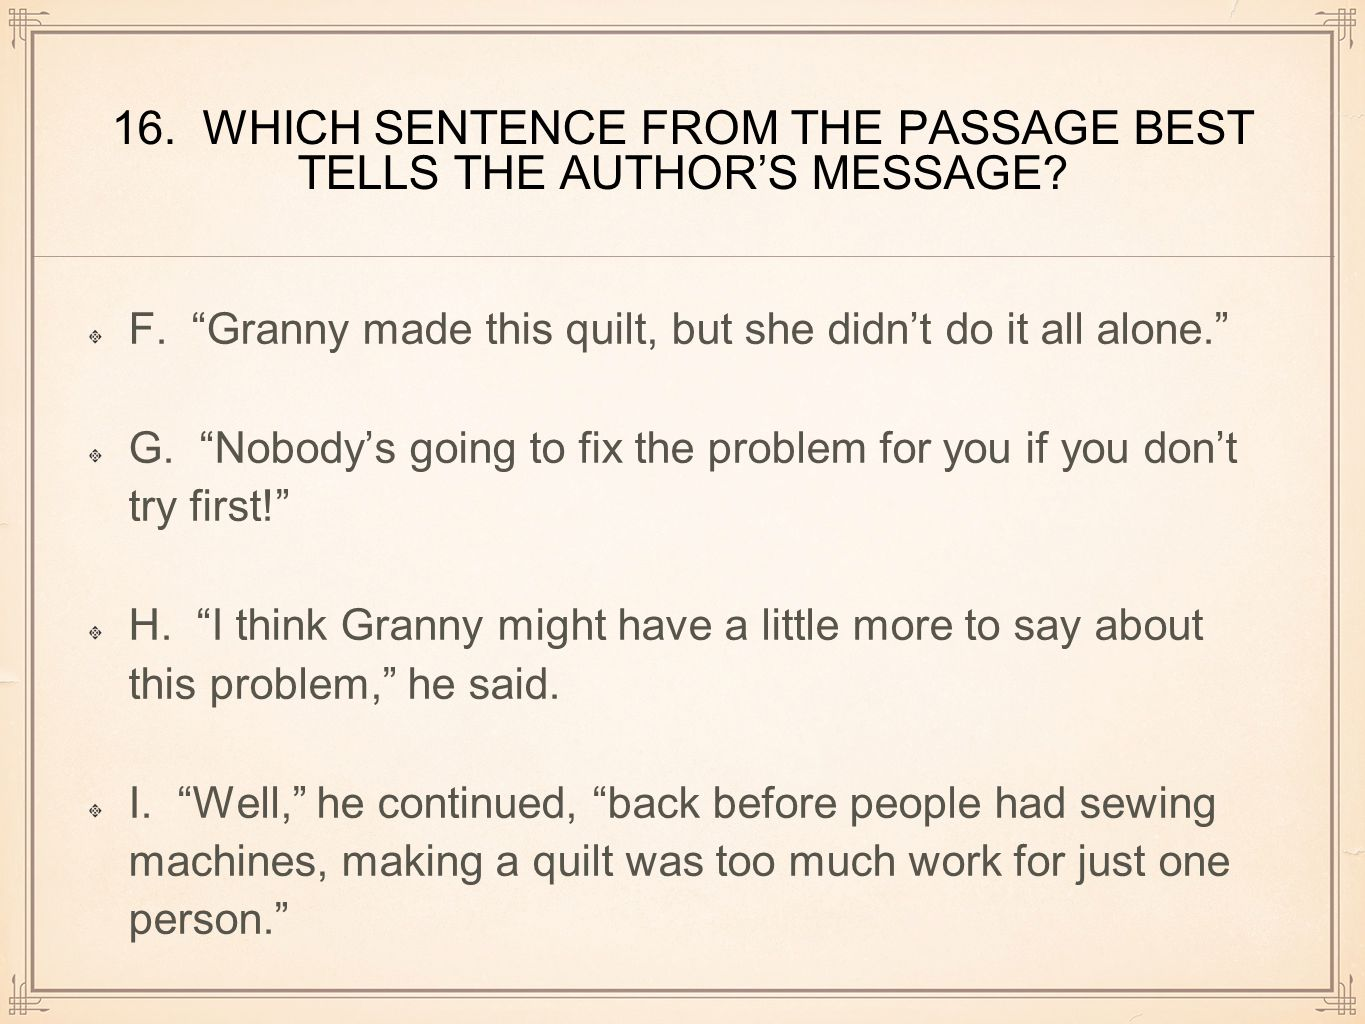 16. WHICH SENTENCE FROM THE PASSAGE BEST TELLS THE AUTHOR'S MESSAGE